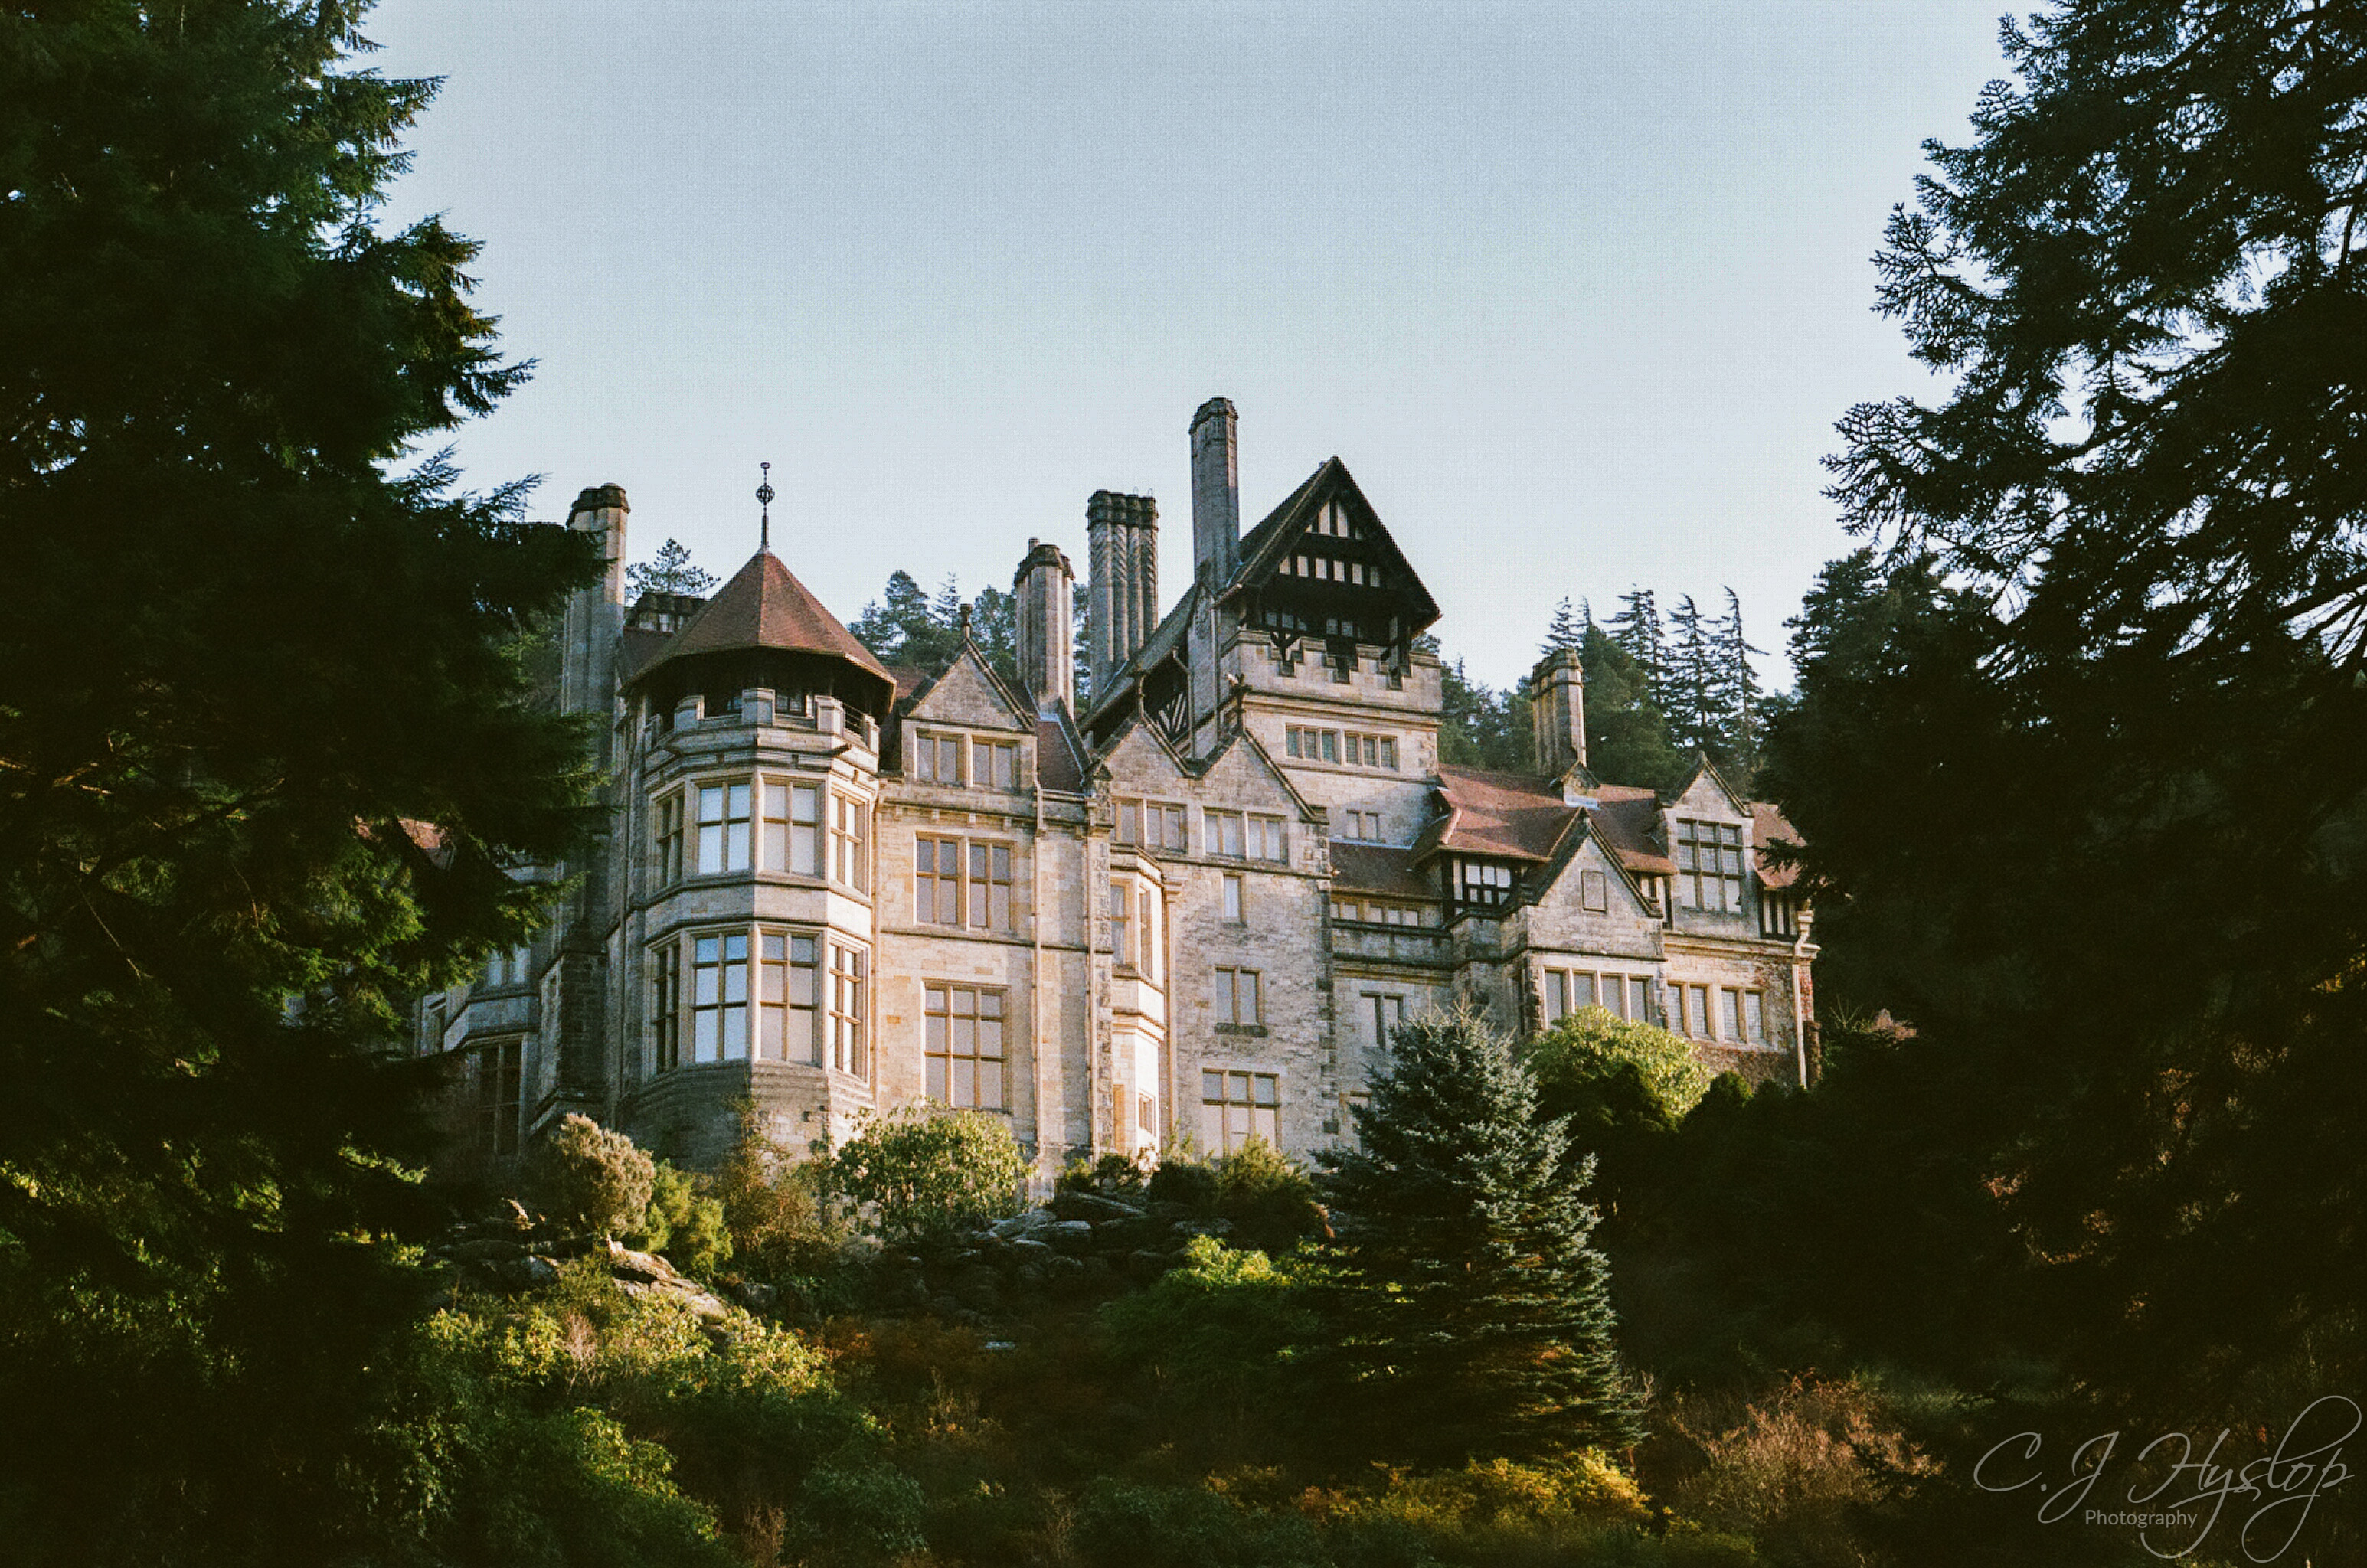 Cragside November 2018 ~ Rolleiflex SL35